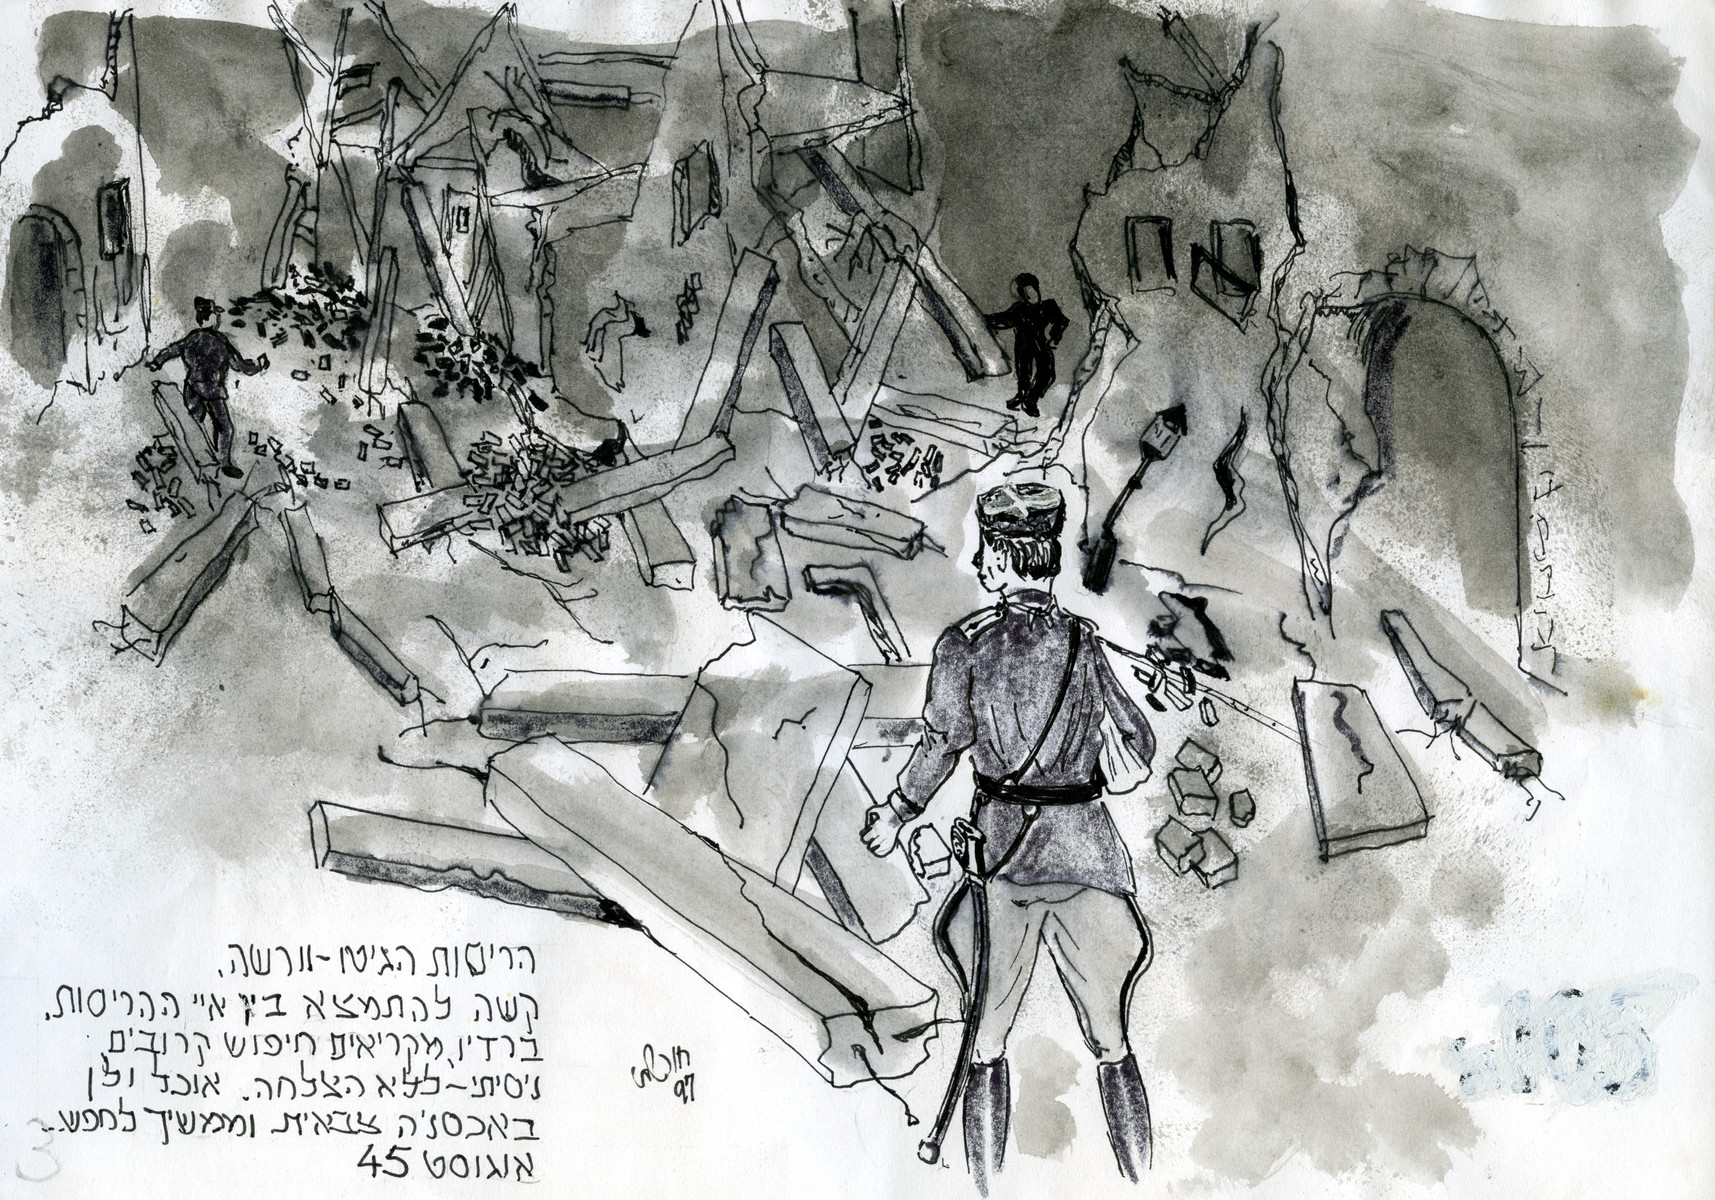 Page of a pictoral memoir drawn by the donor documenting his experiences after the Holocaust showing the artist searching unsuccessfully in the ruins of the detroyed Warsaw ghetto for any relatives.